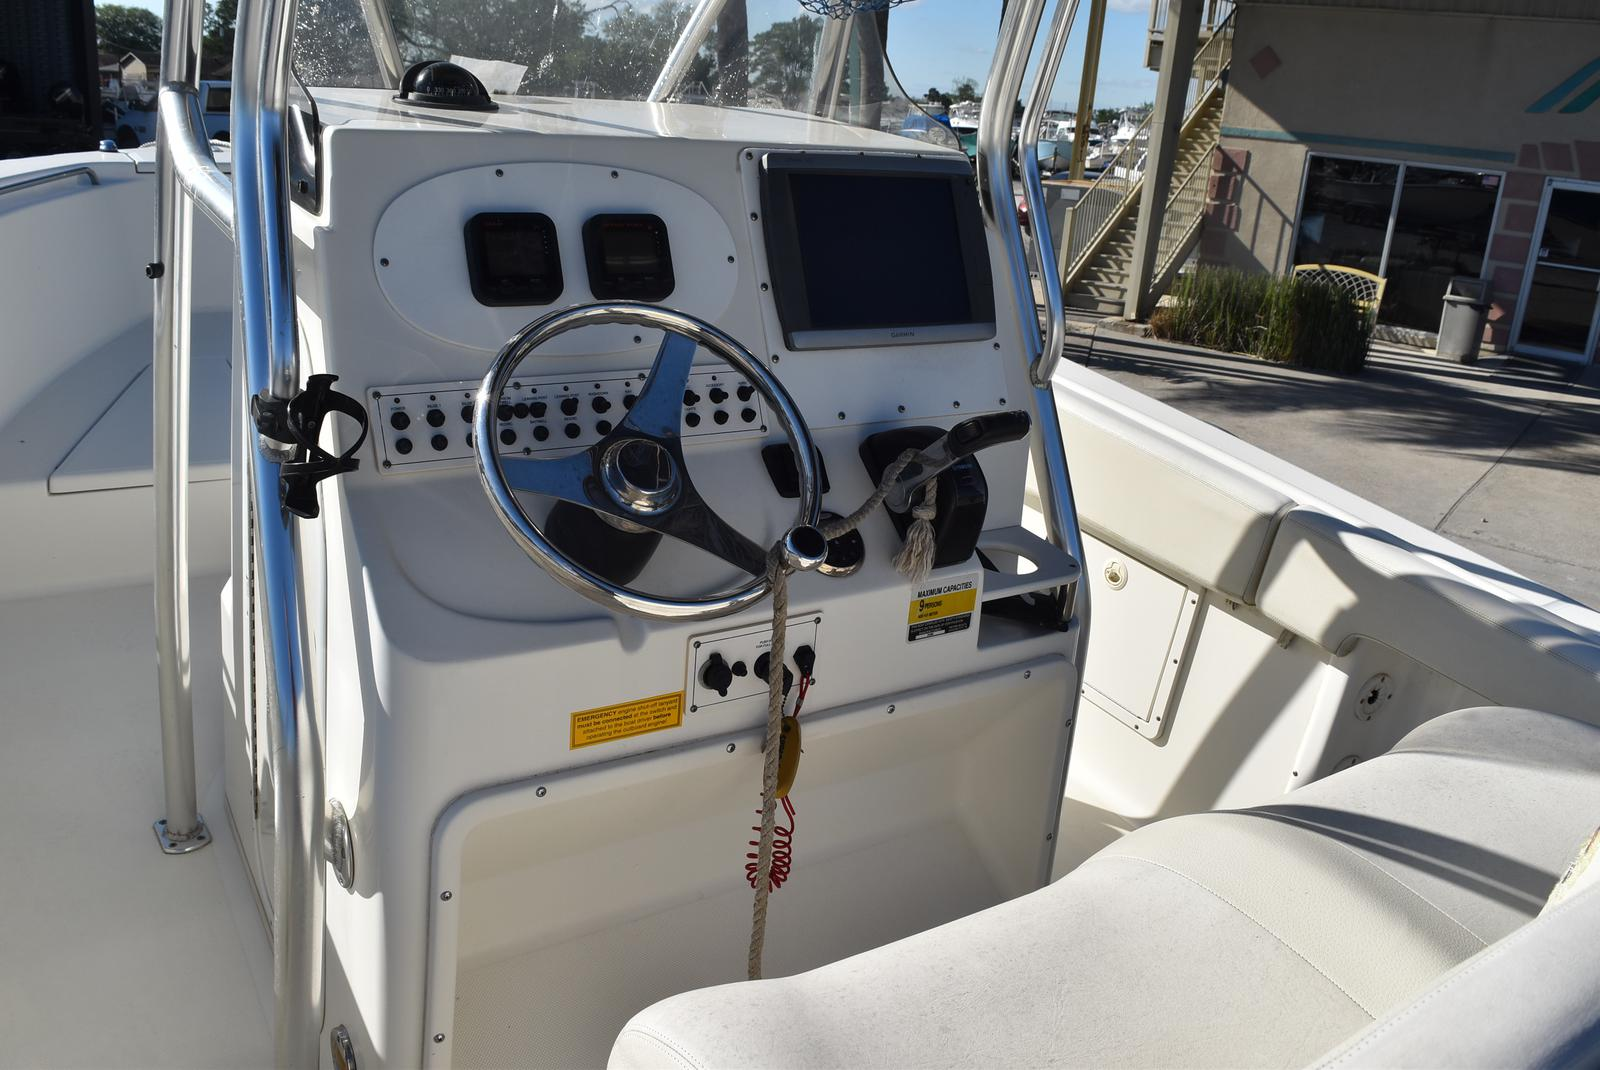 2006 Triton boat for sale, model of the boat is 2486 & Image # 18 of 24